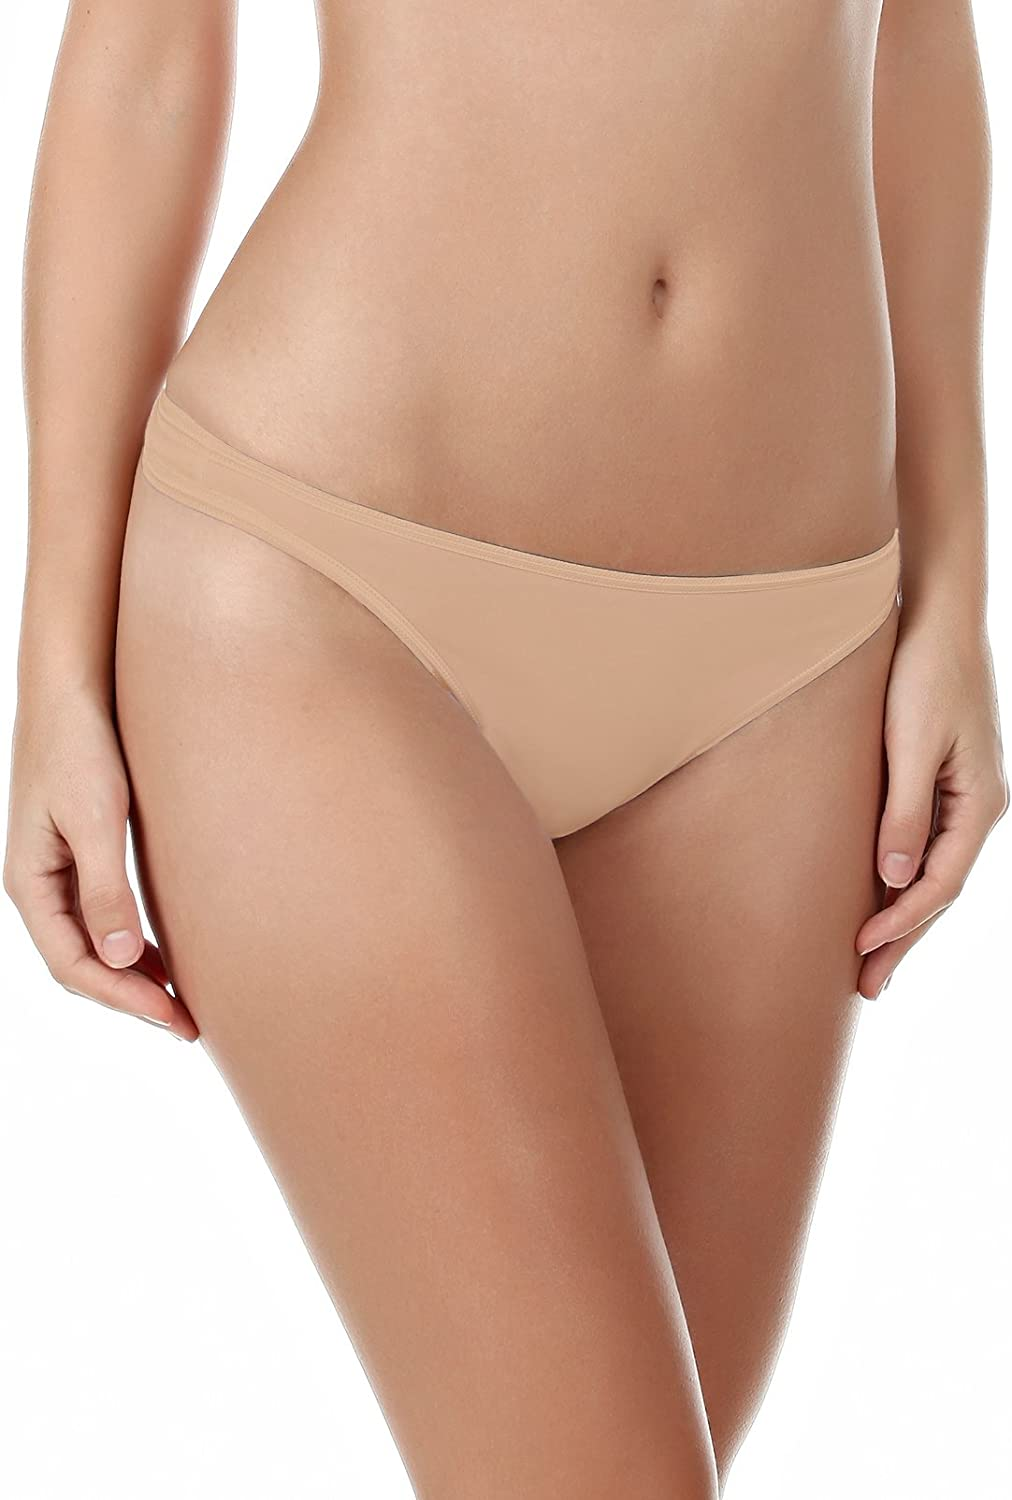 Popular products Felina Women's Austin Mall So Thong Smooth